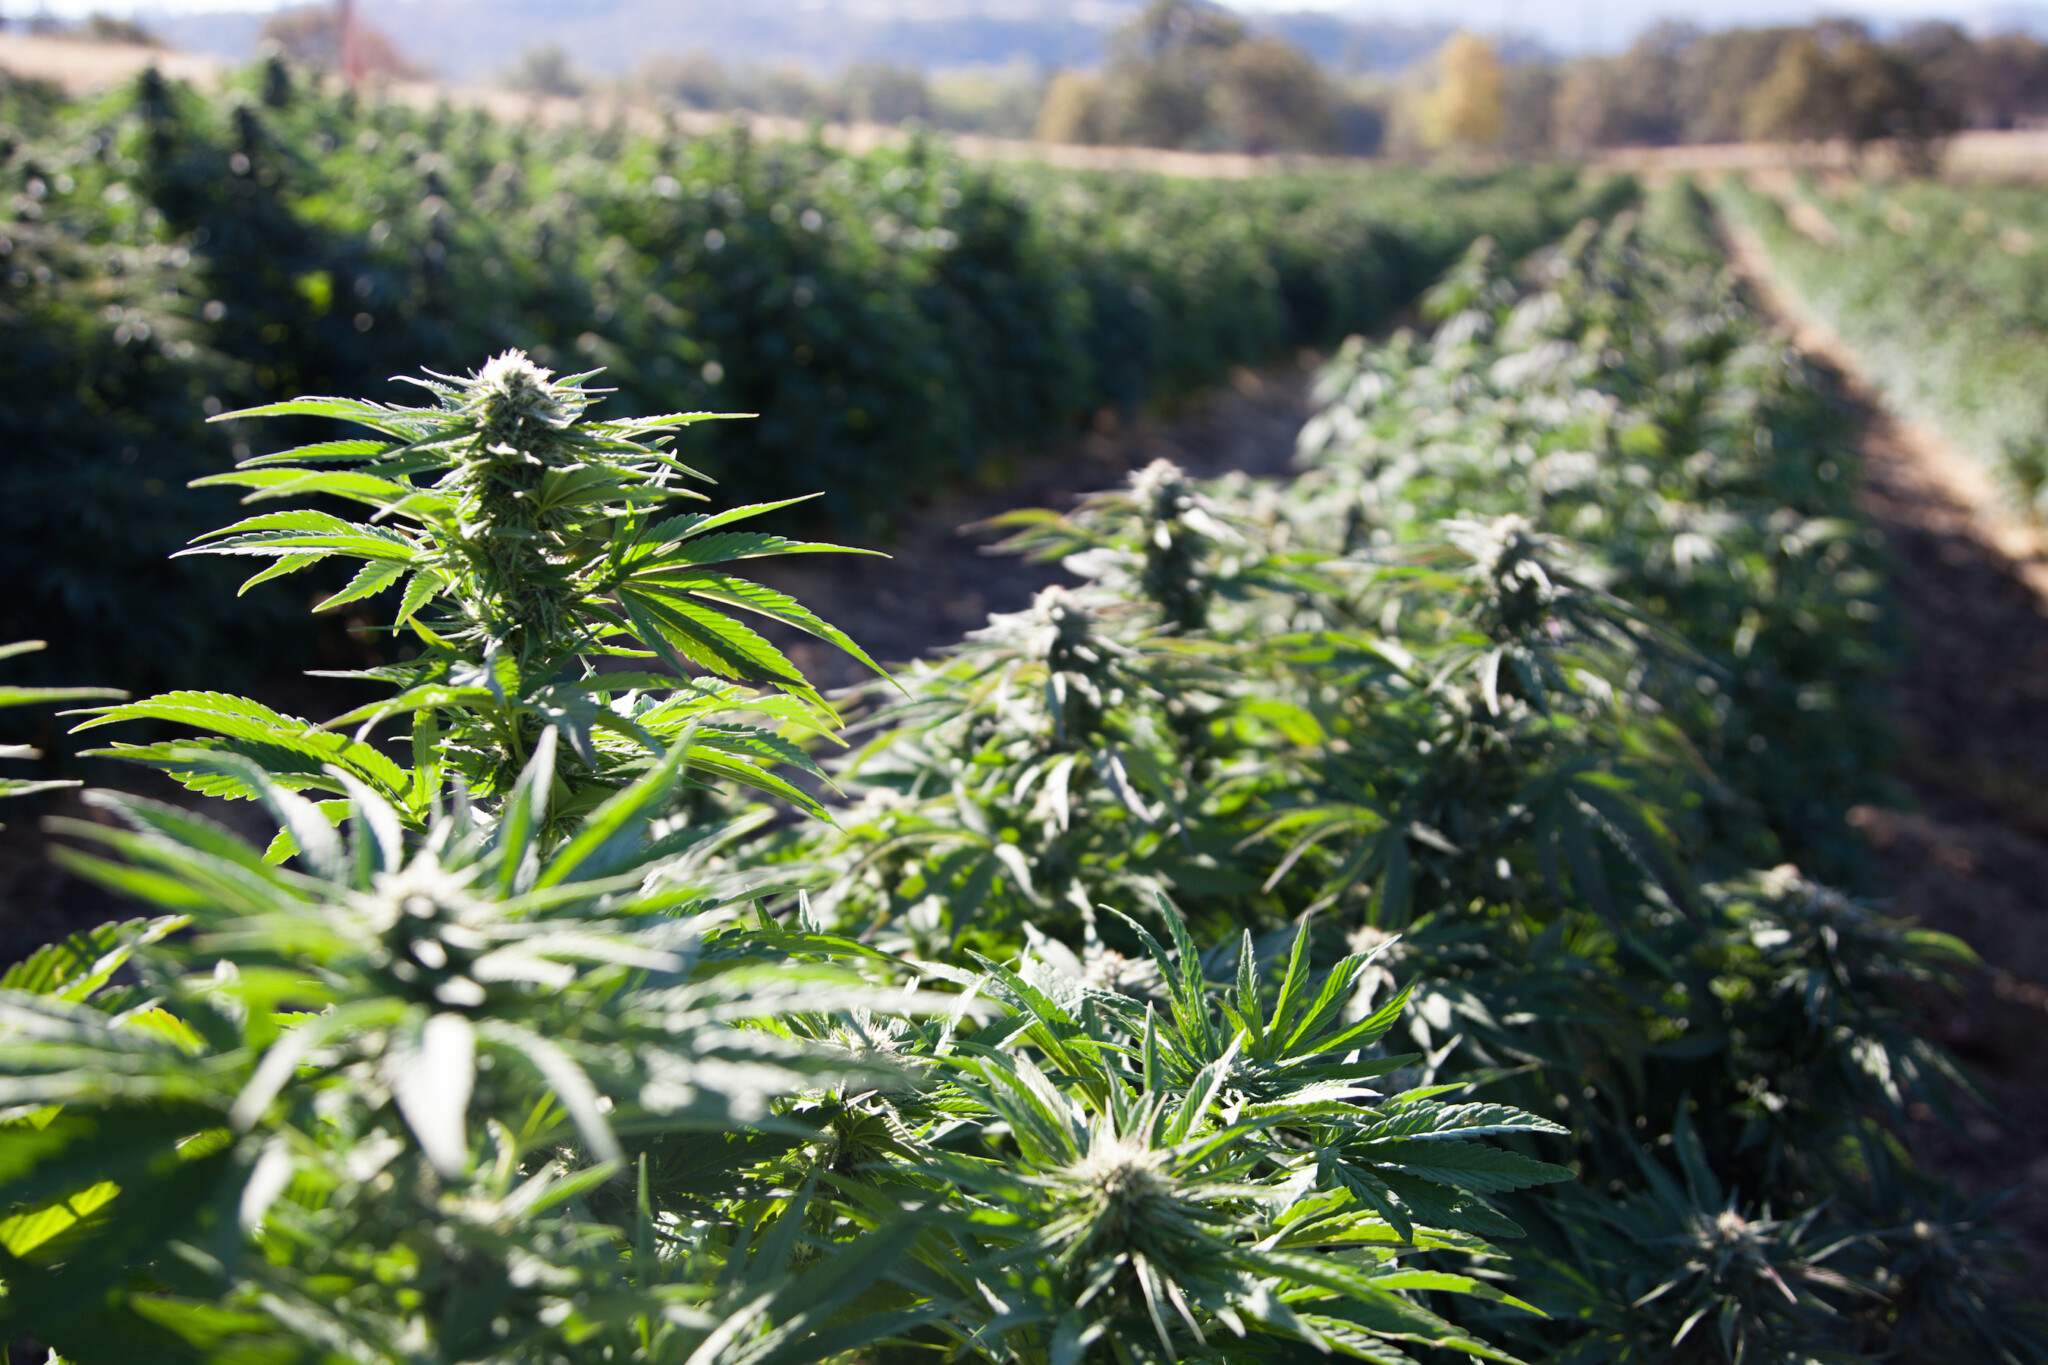 Mother Nature's Genius: Understanding Phytosynthesis Reveals Access to Naturally Occurring but Rare Minor Cannabinoids with Therapeutic Properties